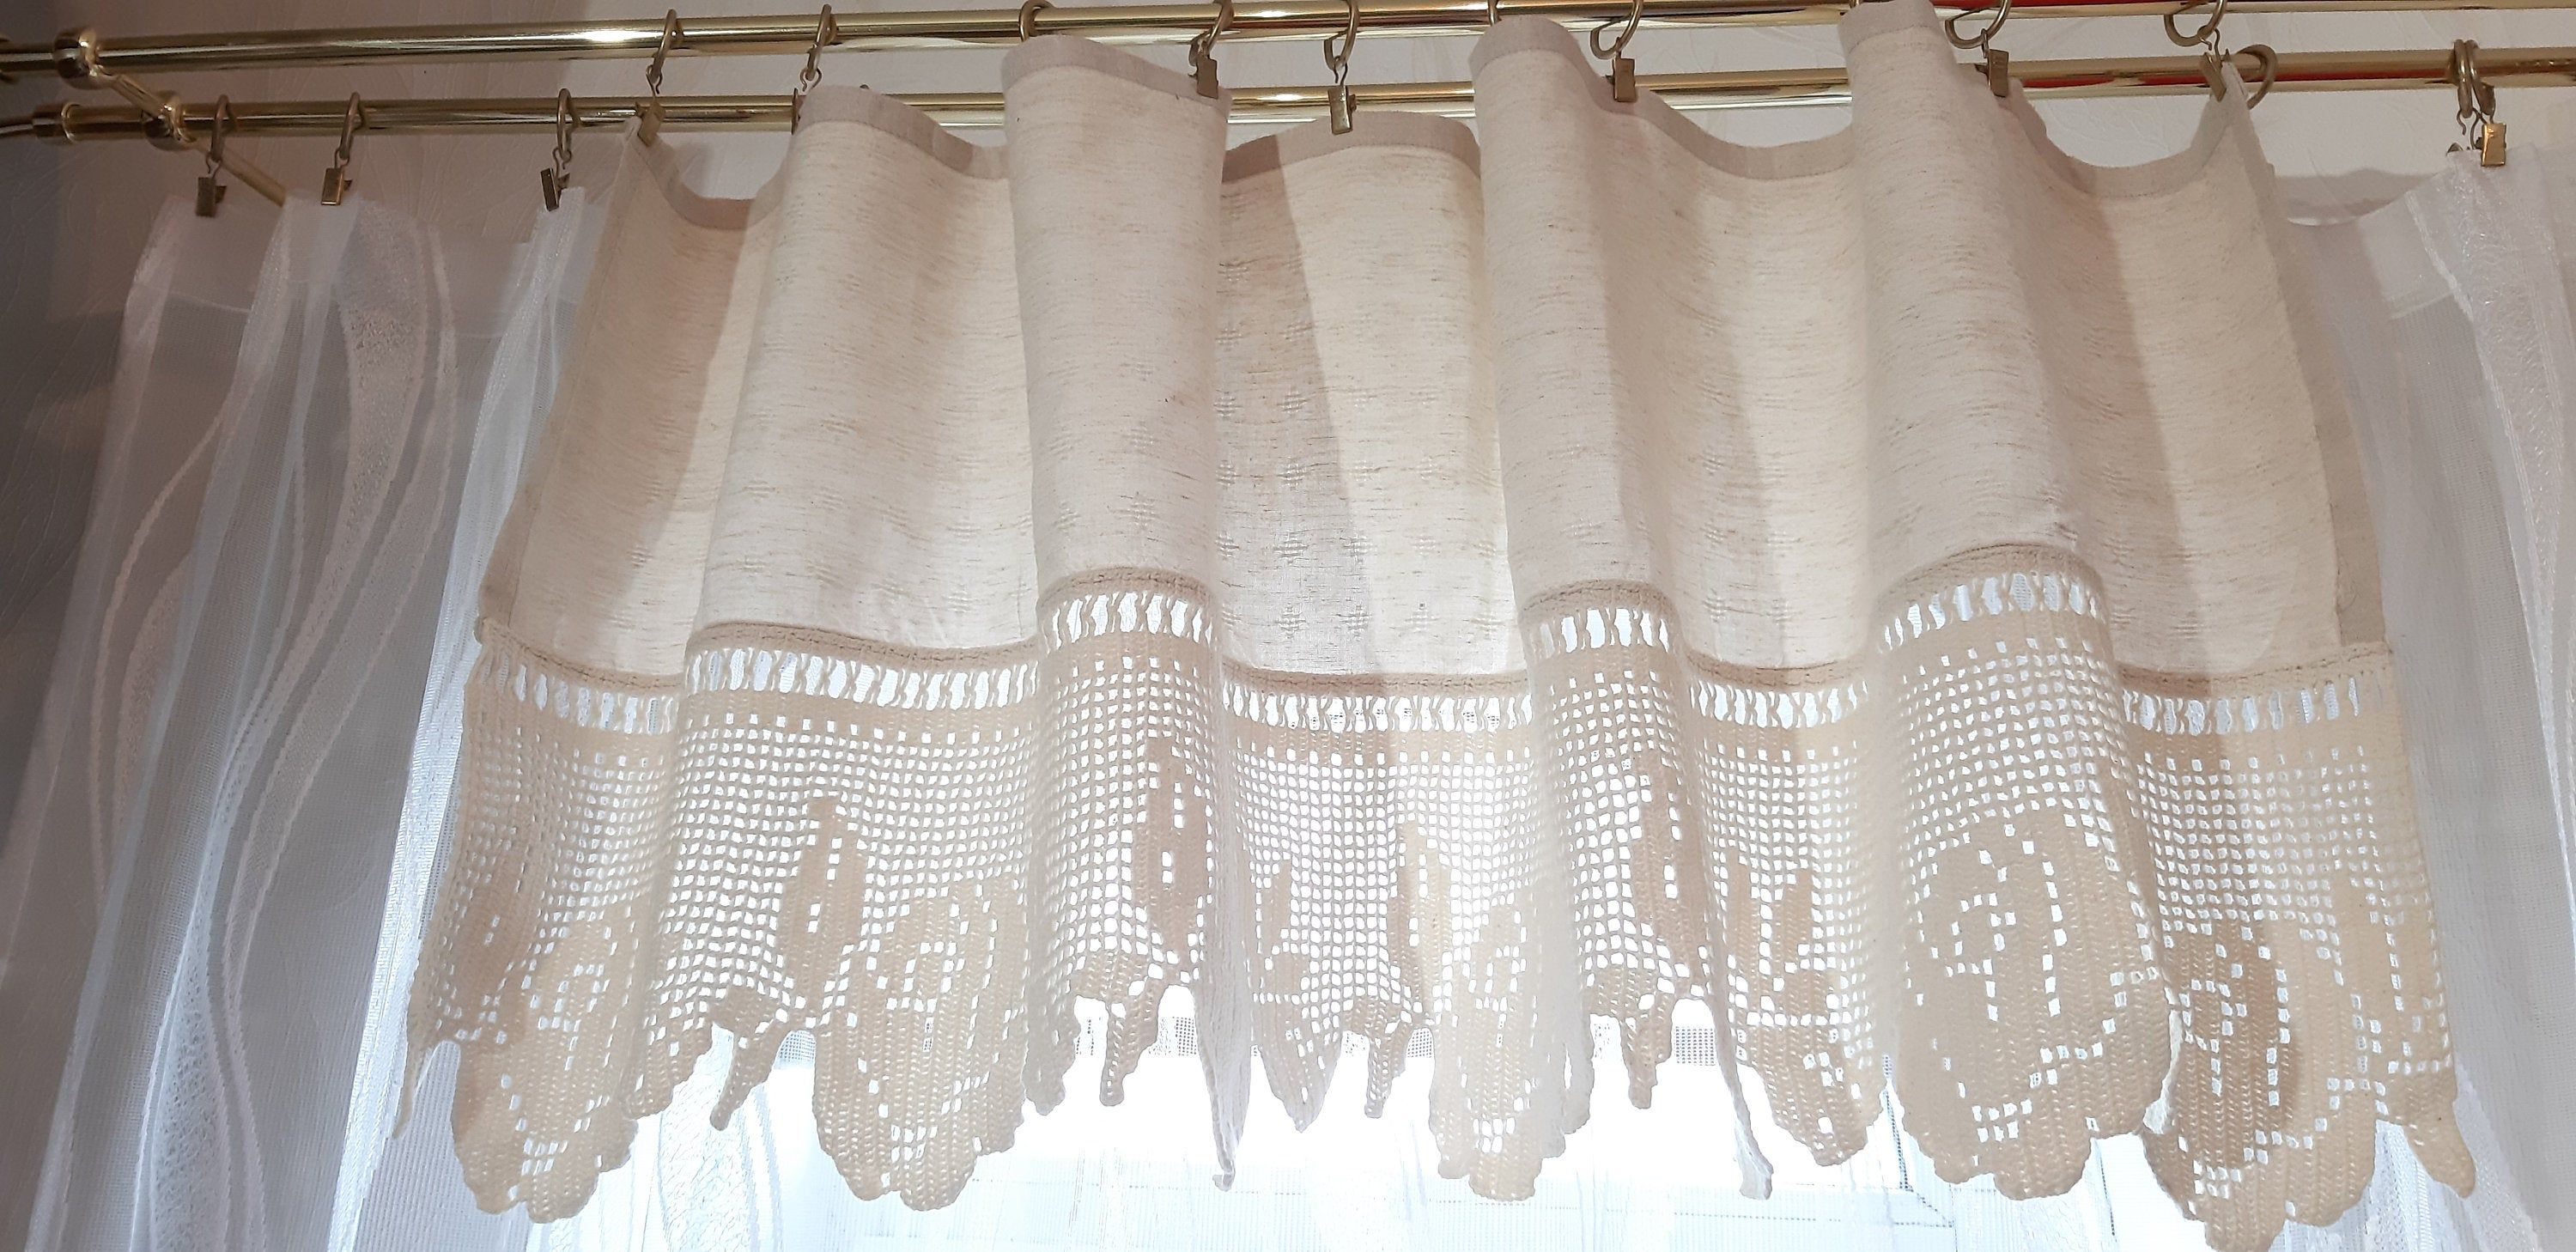 Vintage Valance Curtains Classic White Valance Curtains Crochet